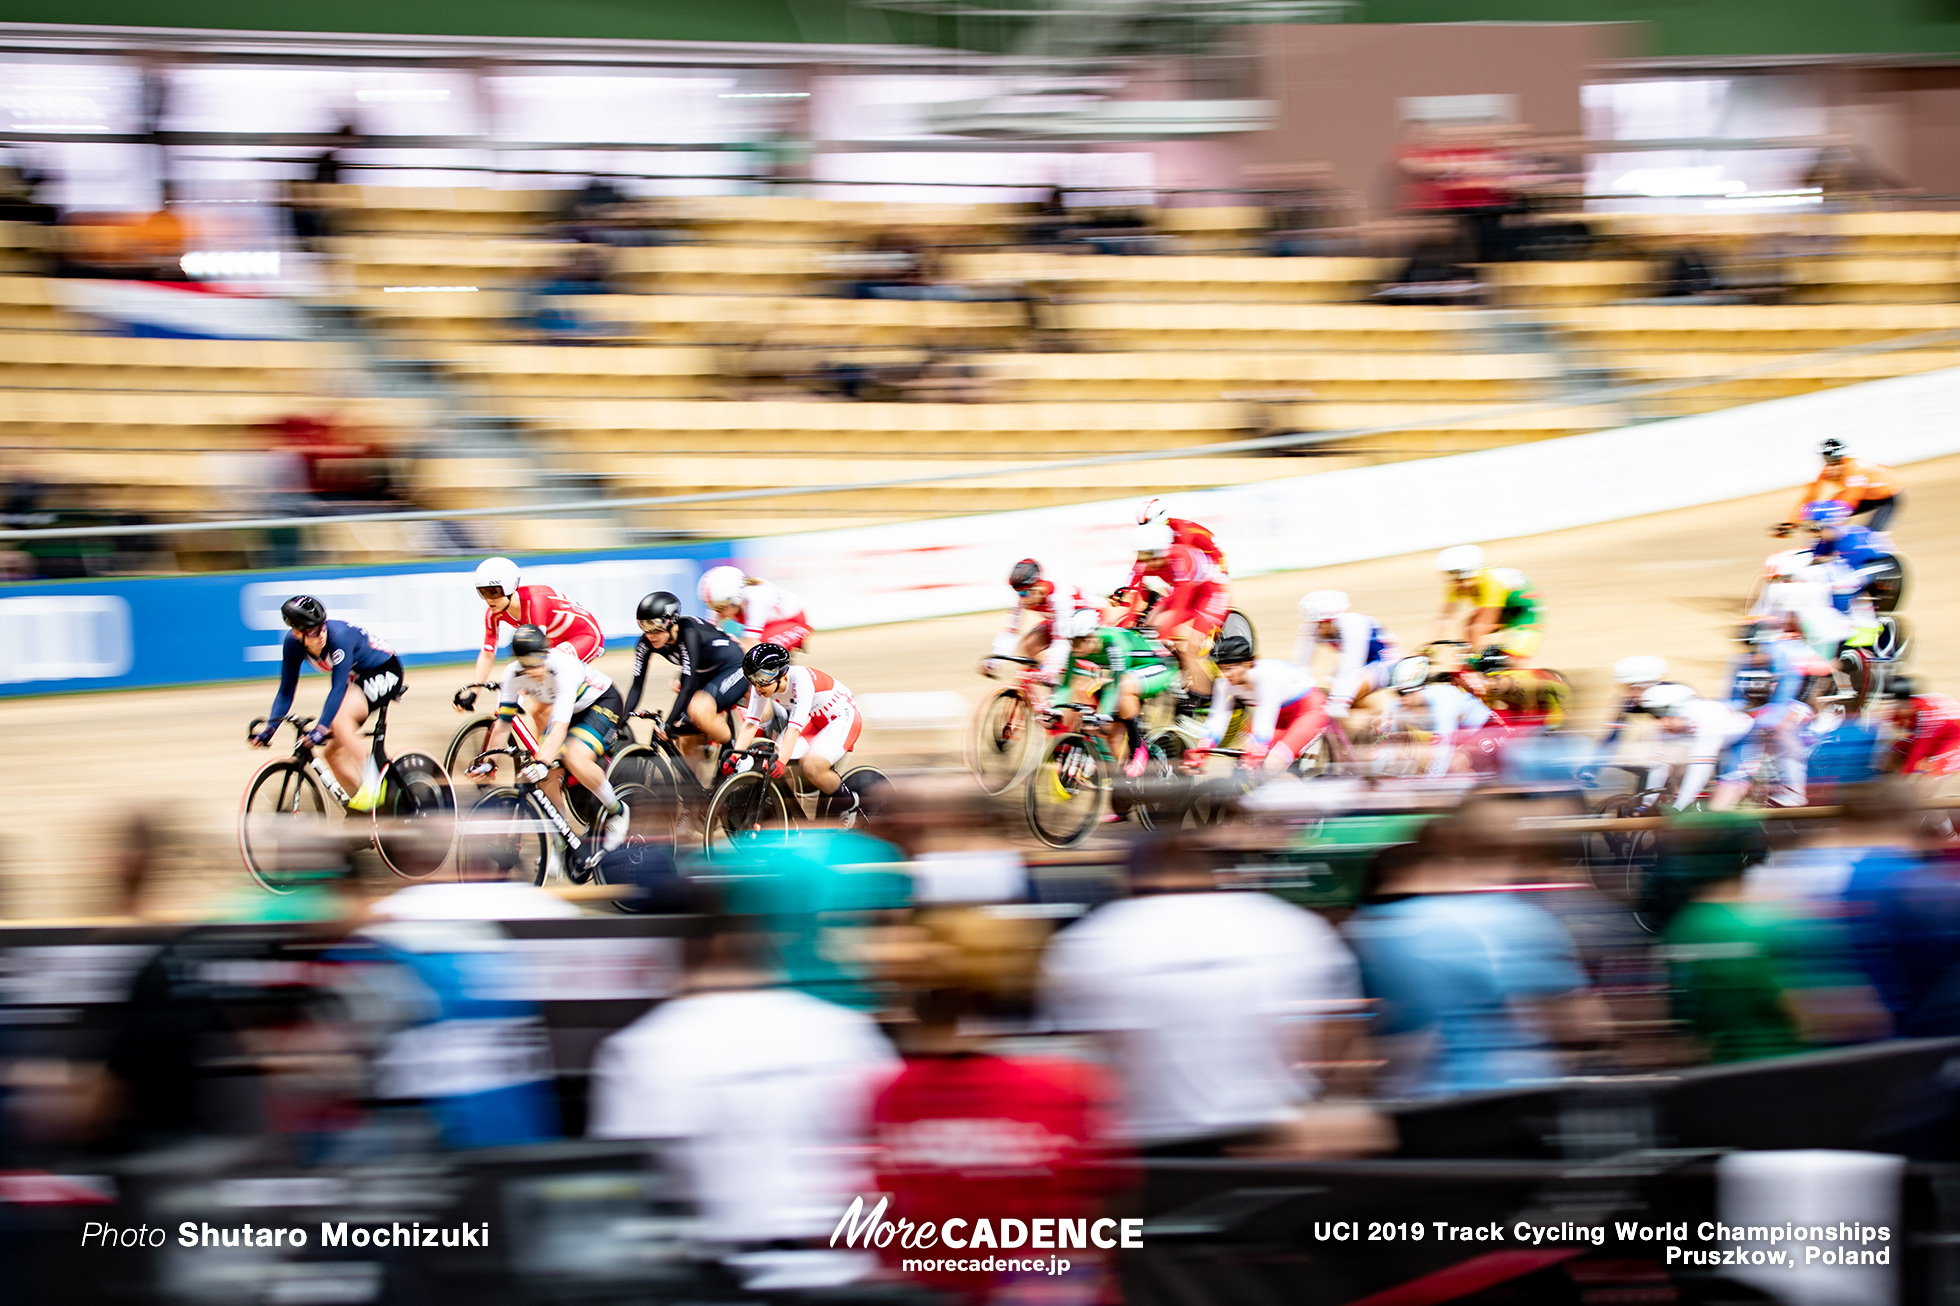 Women's Omnium Scratch Race / 2019 Track Cycling World Championships Pruszków, Poland